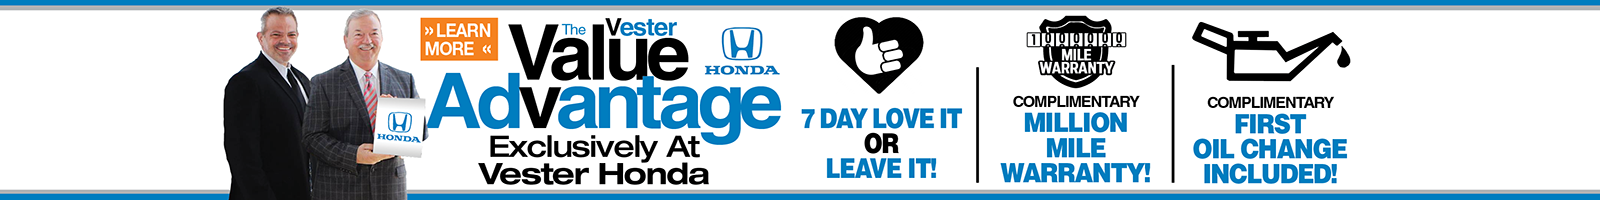 Value-Advantage-Honda